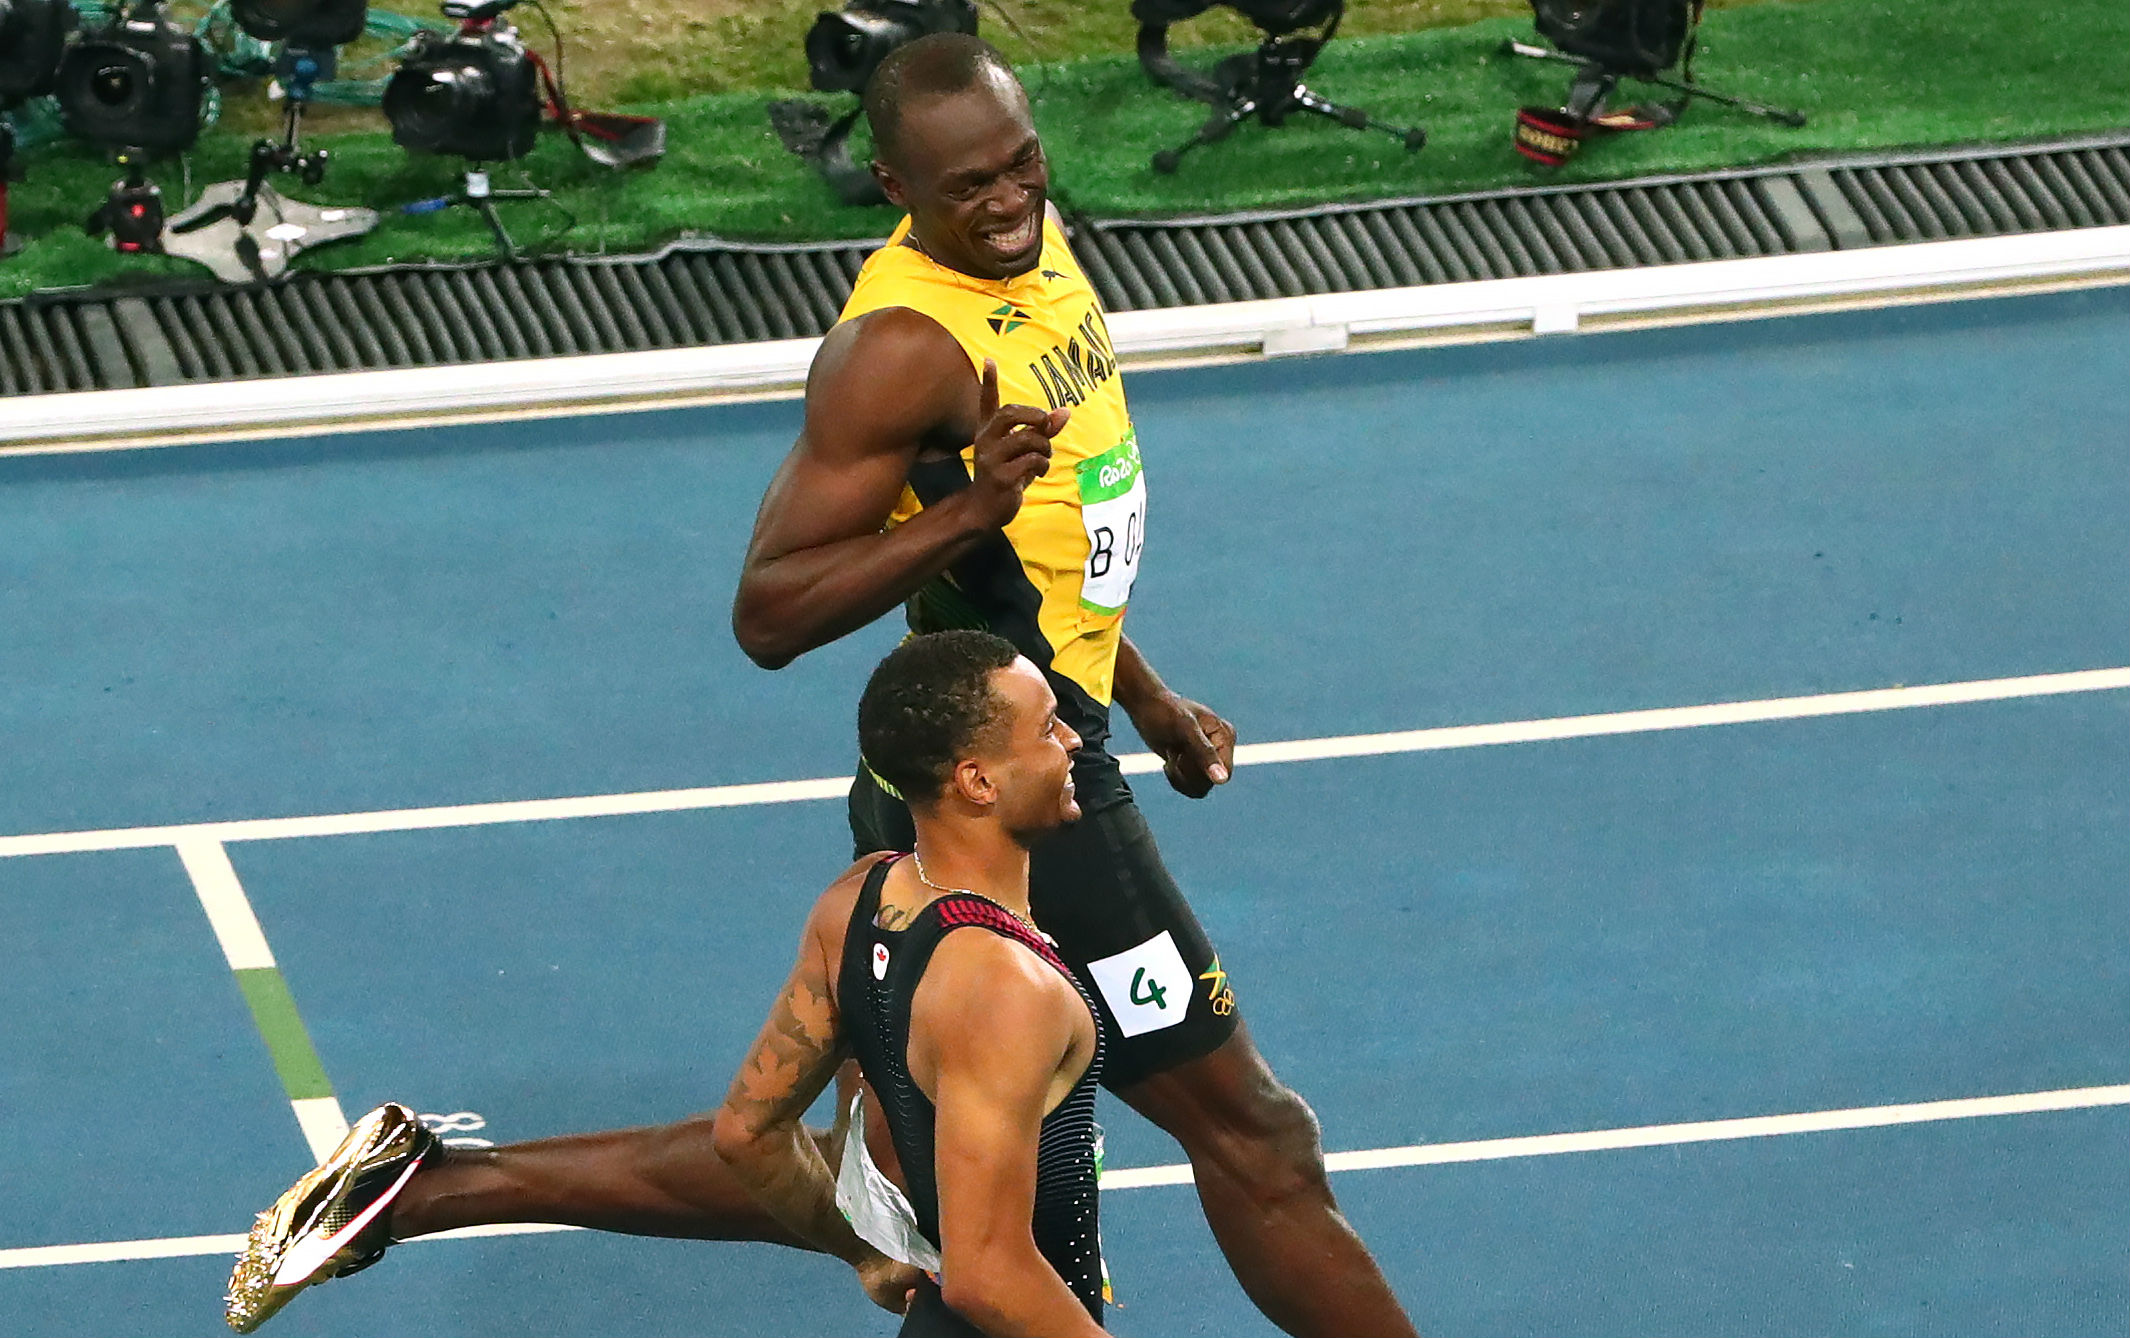 Usain Bolt's Gold Puma Spikes for the Olympics Laugh